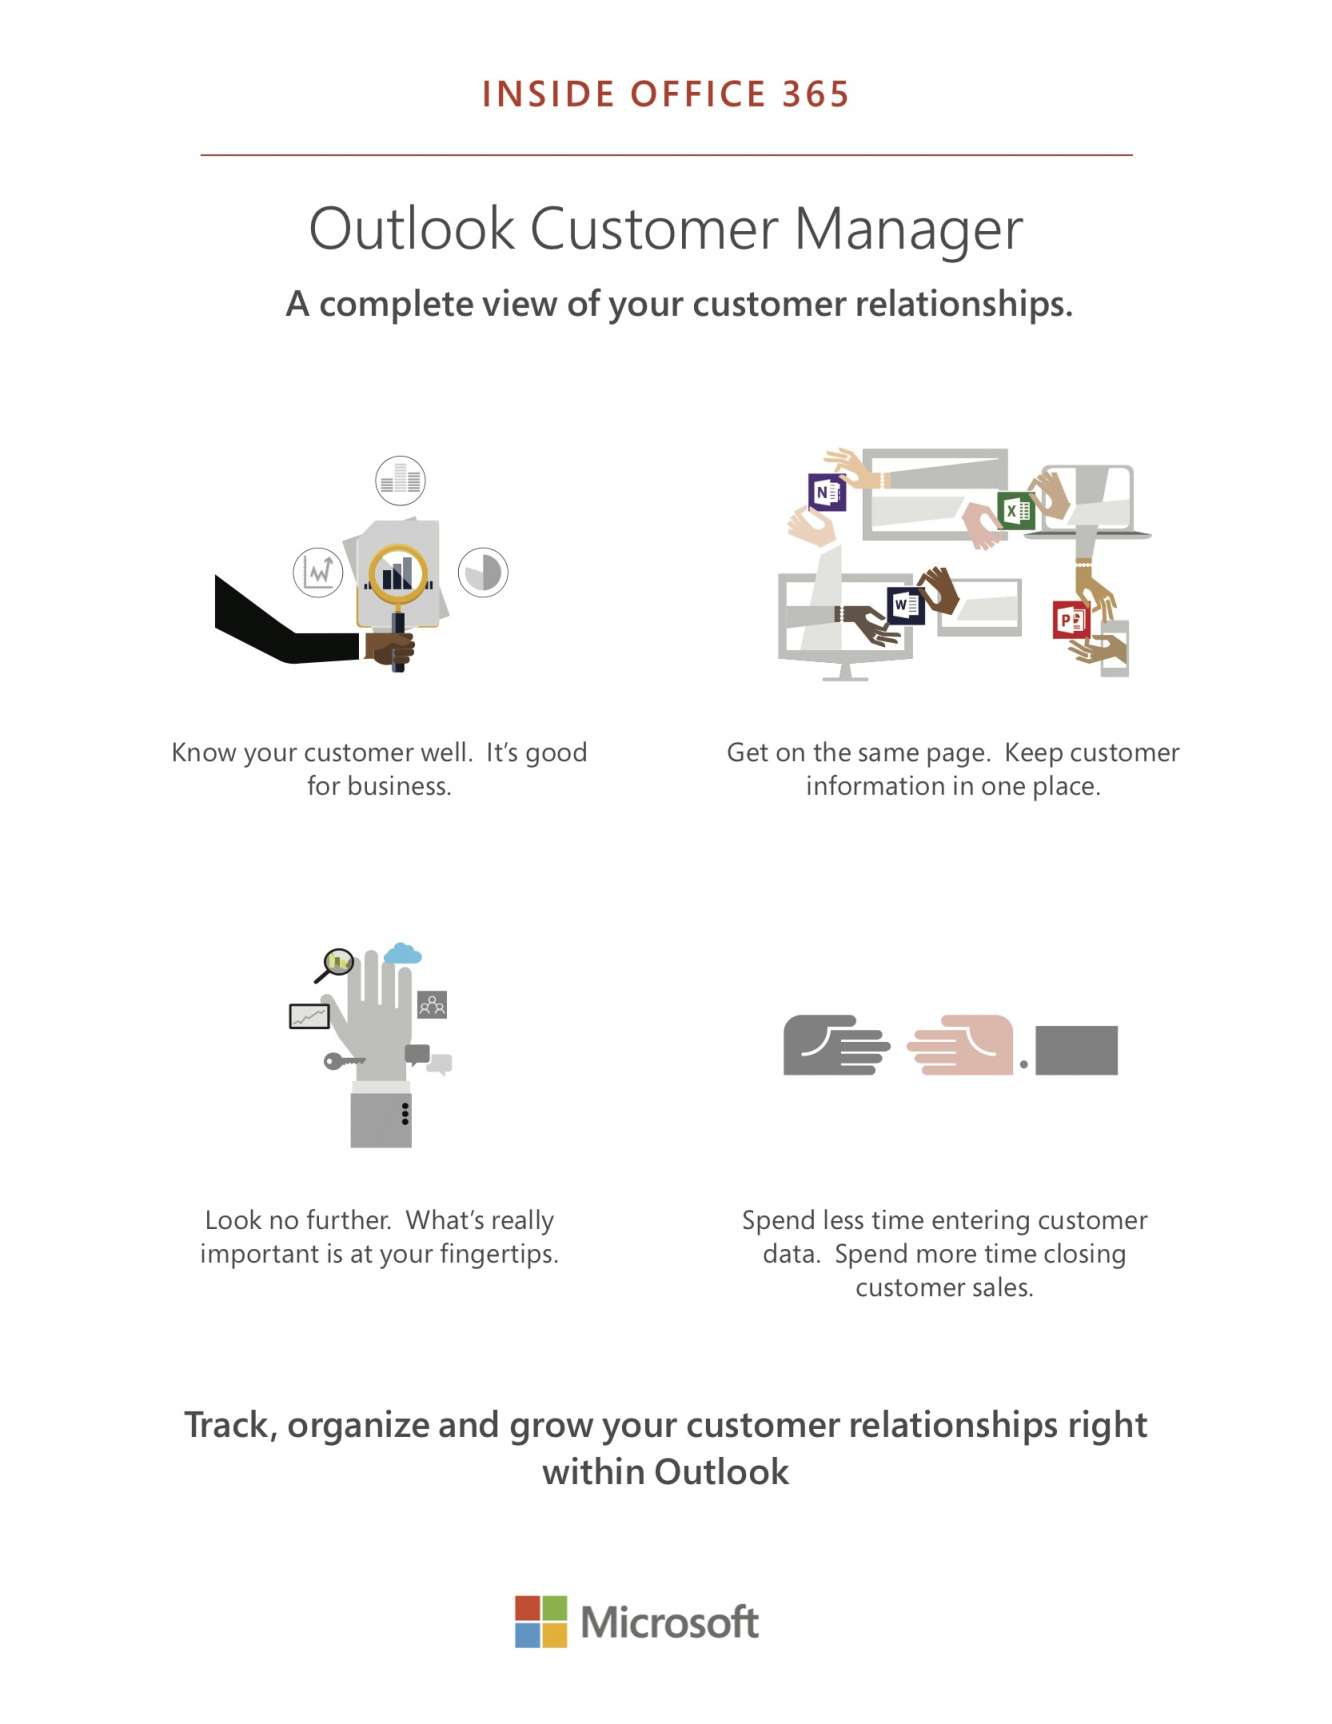 Outlook Customer Manager - A complete view of your customer relationships